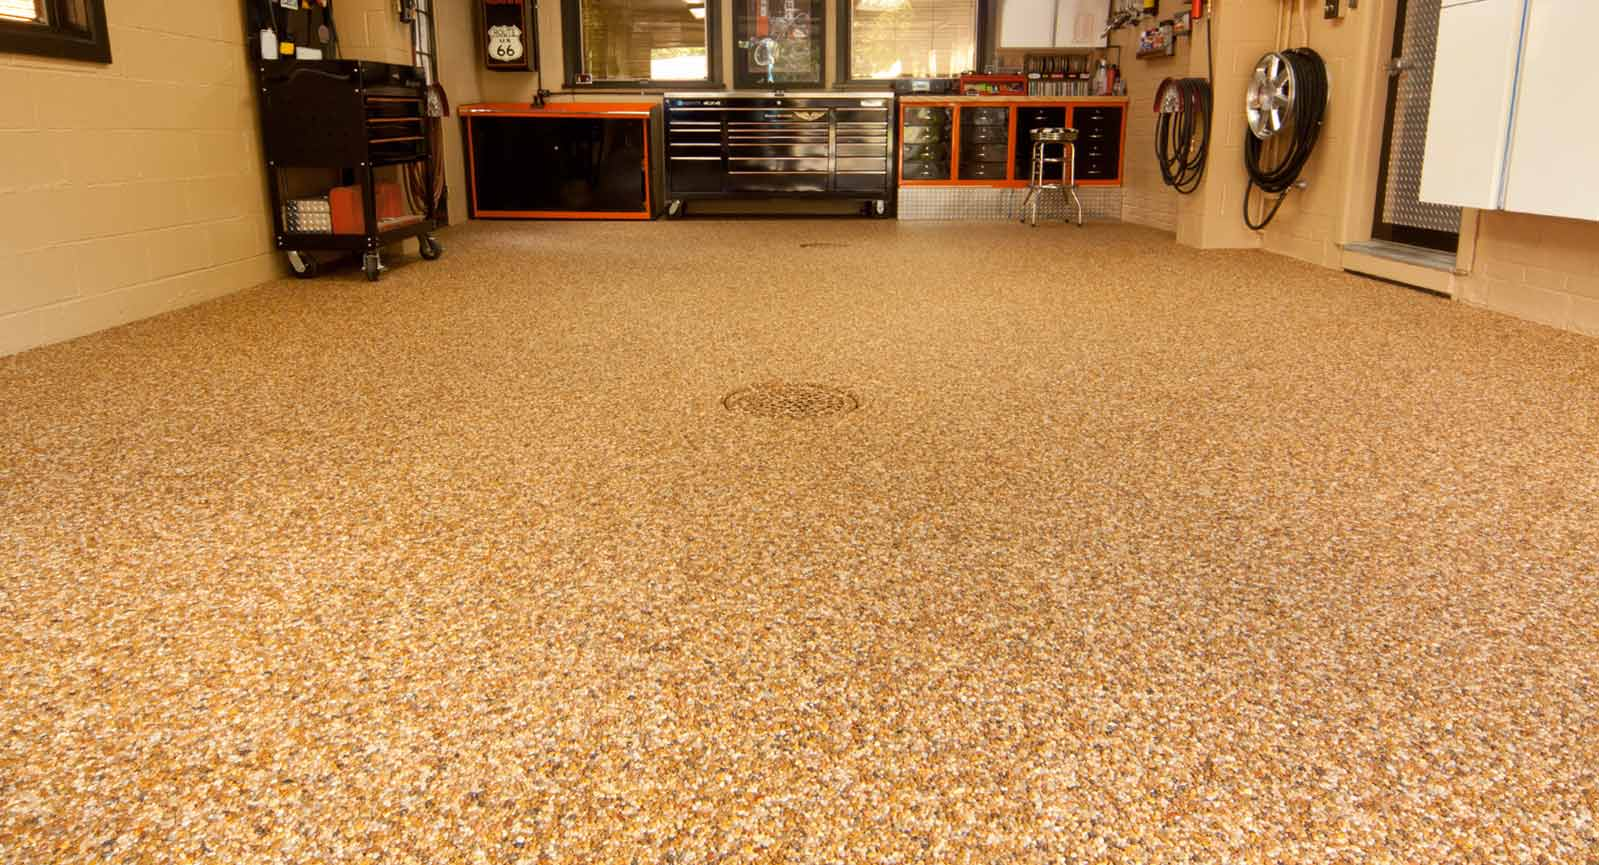 Bring basement floor covering more vivid homesfeed - Painting basement floor painting finishing and covering ...